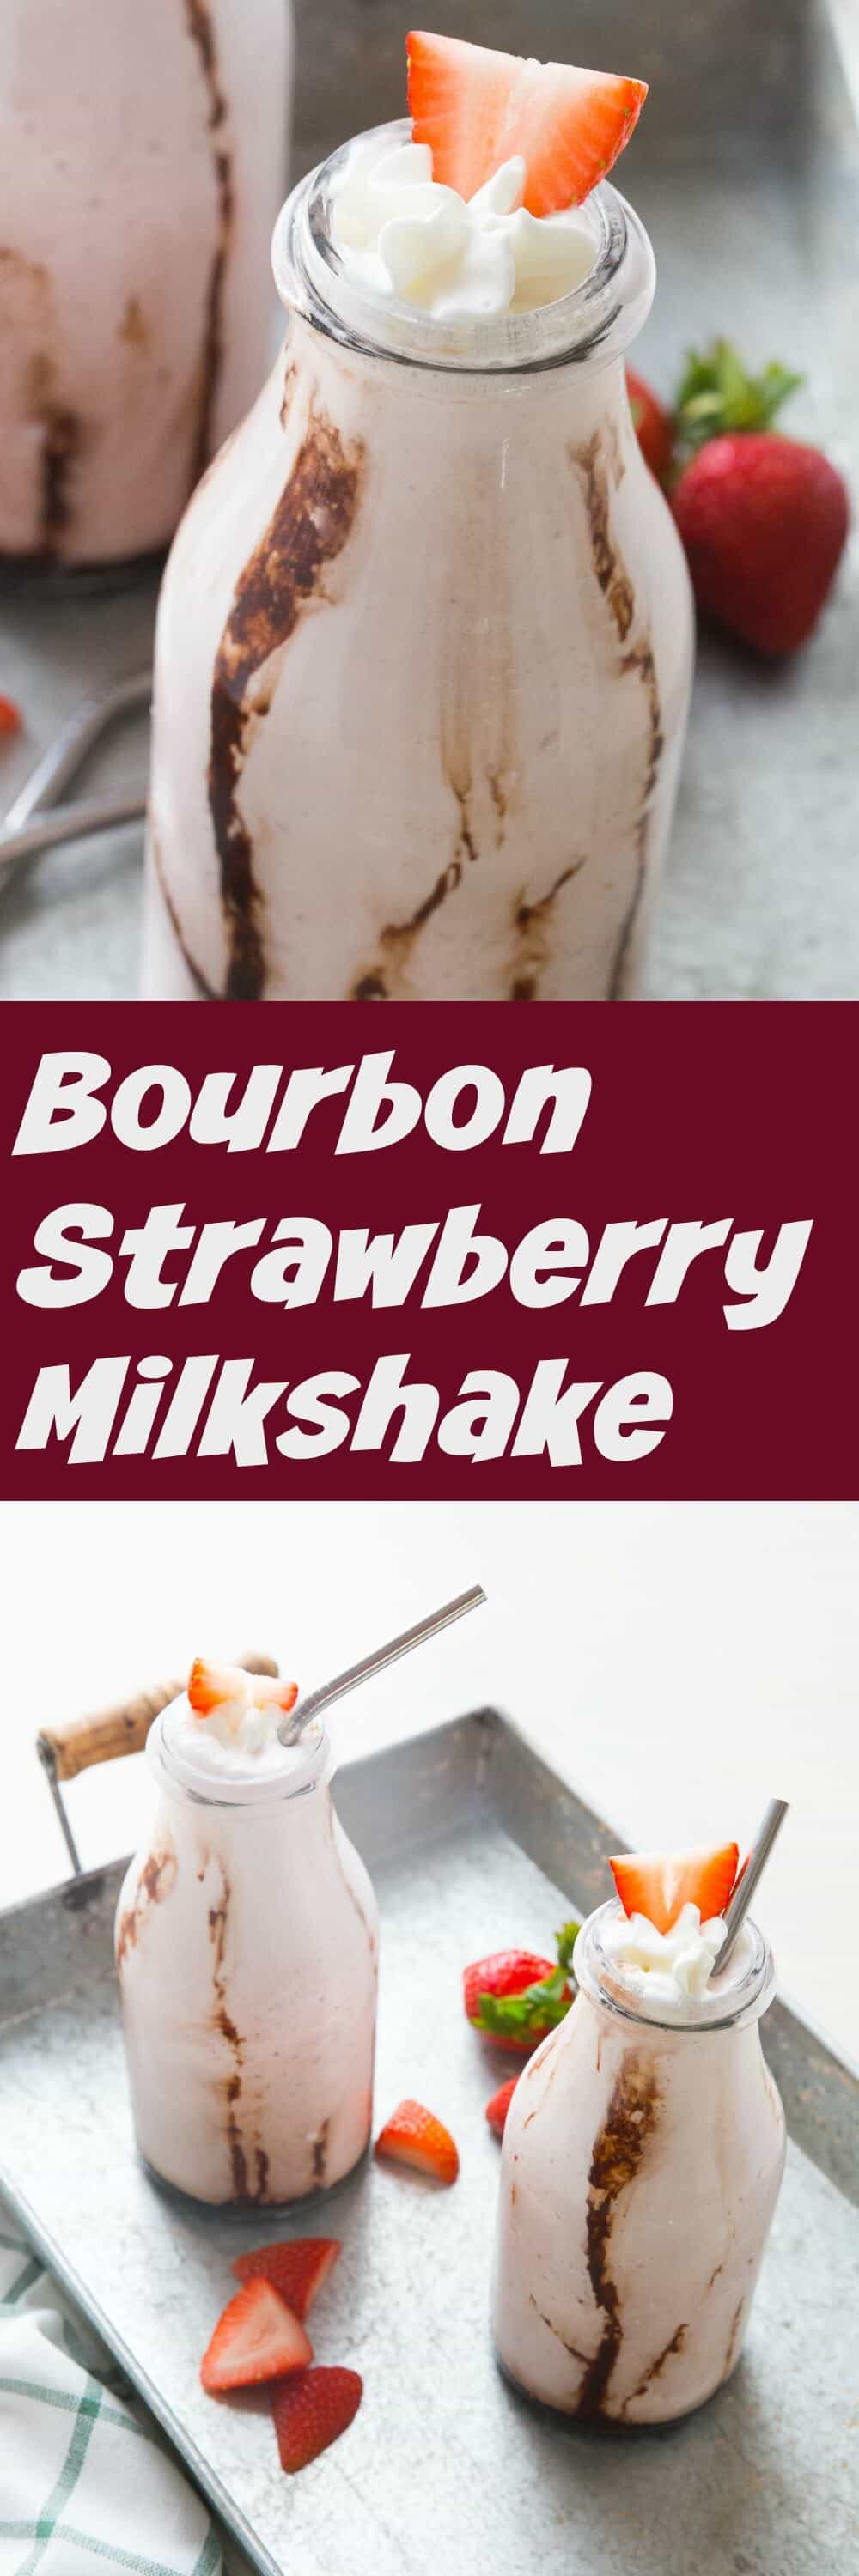 Nothing is as wonderful as a smooth and creamy strawberry milkshakes! A little bourbon brings out the pure sweetness of the strawberries and tastes amazing in this adult milkshake!